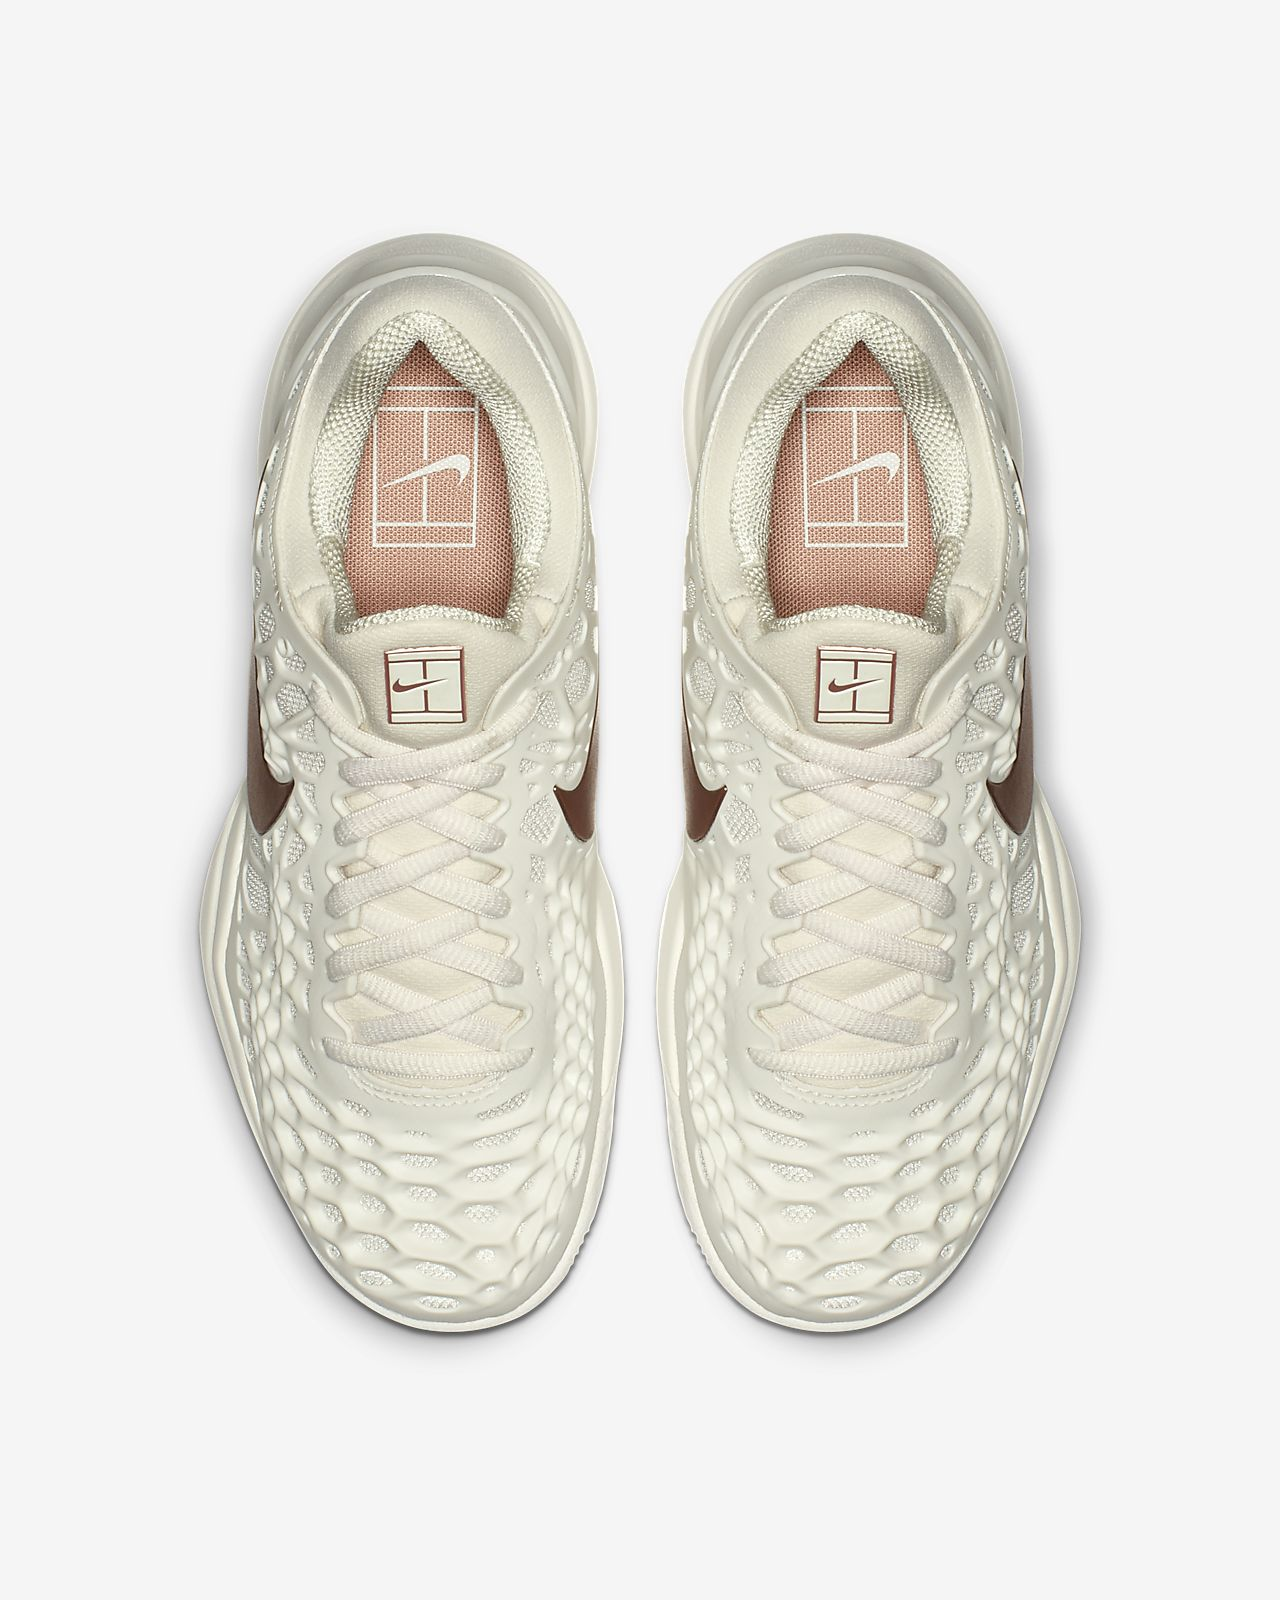 Nike Air Zoom Cage 3 Clay Rose Gold Women's Shoe